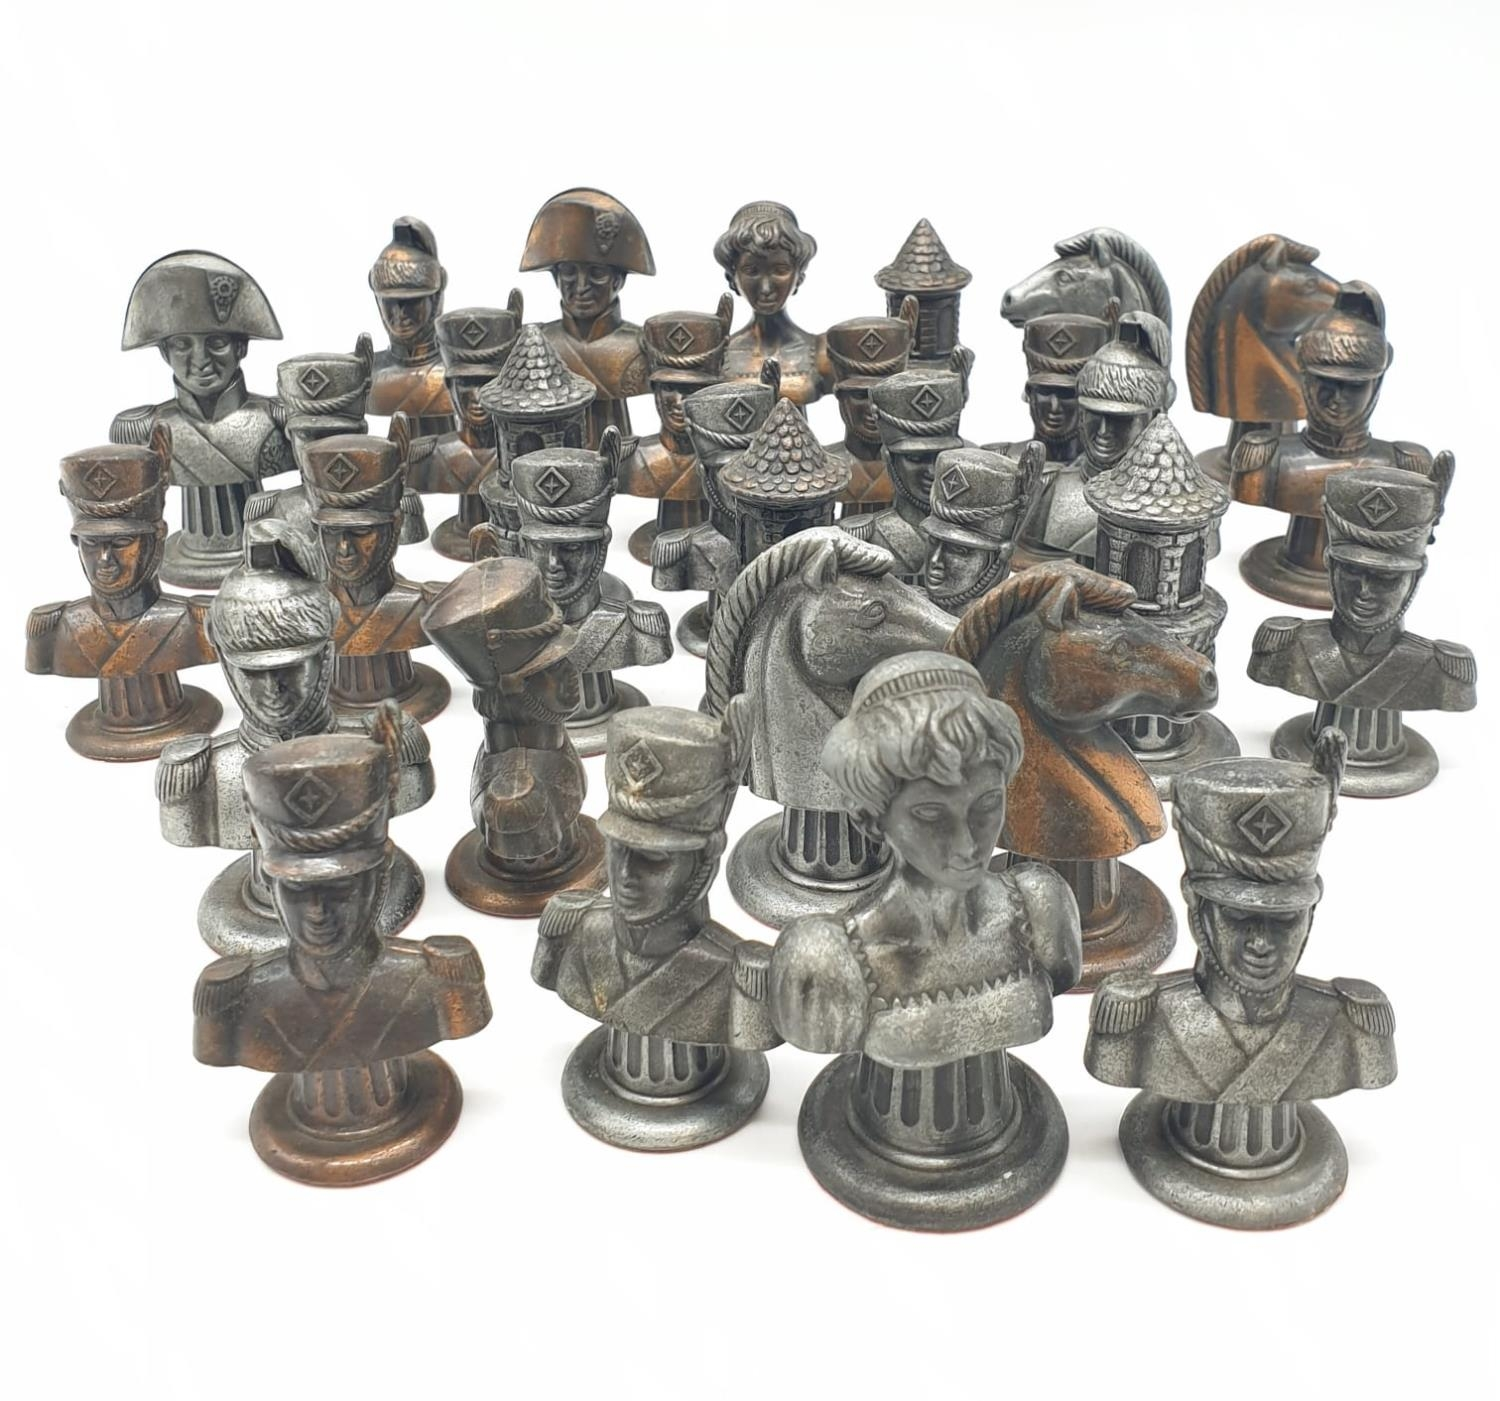 Metal CHESS SET Napoleonic Themed pieces. Napoleon 7.5 cm tall. Play on a square 3.5 cm. - Image 2 of 38